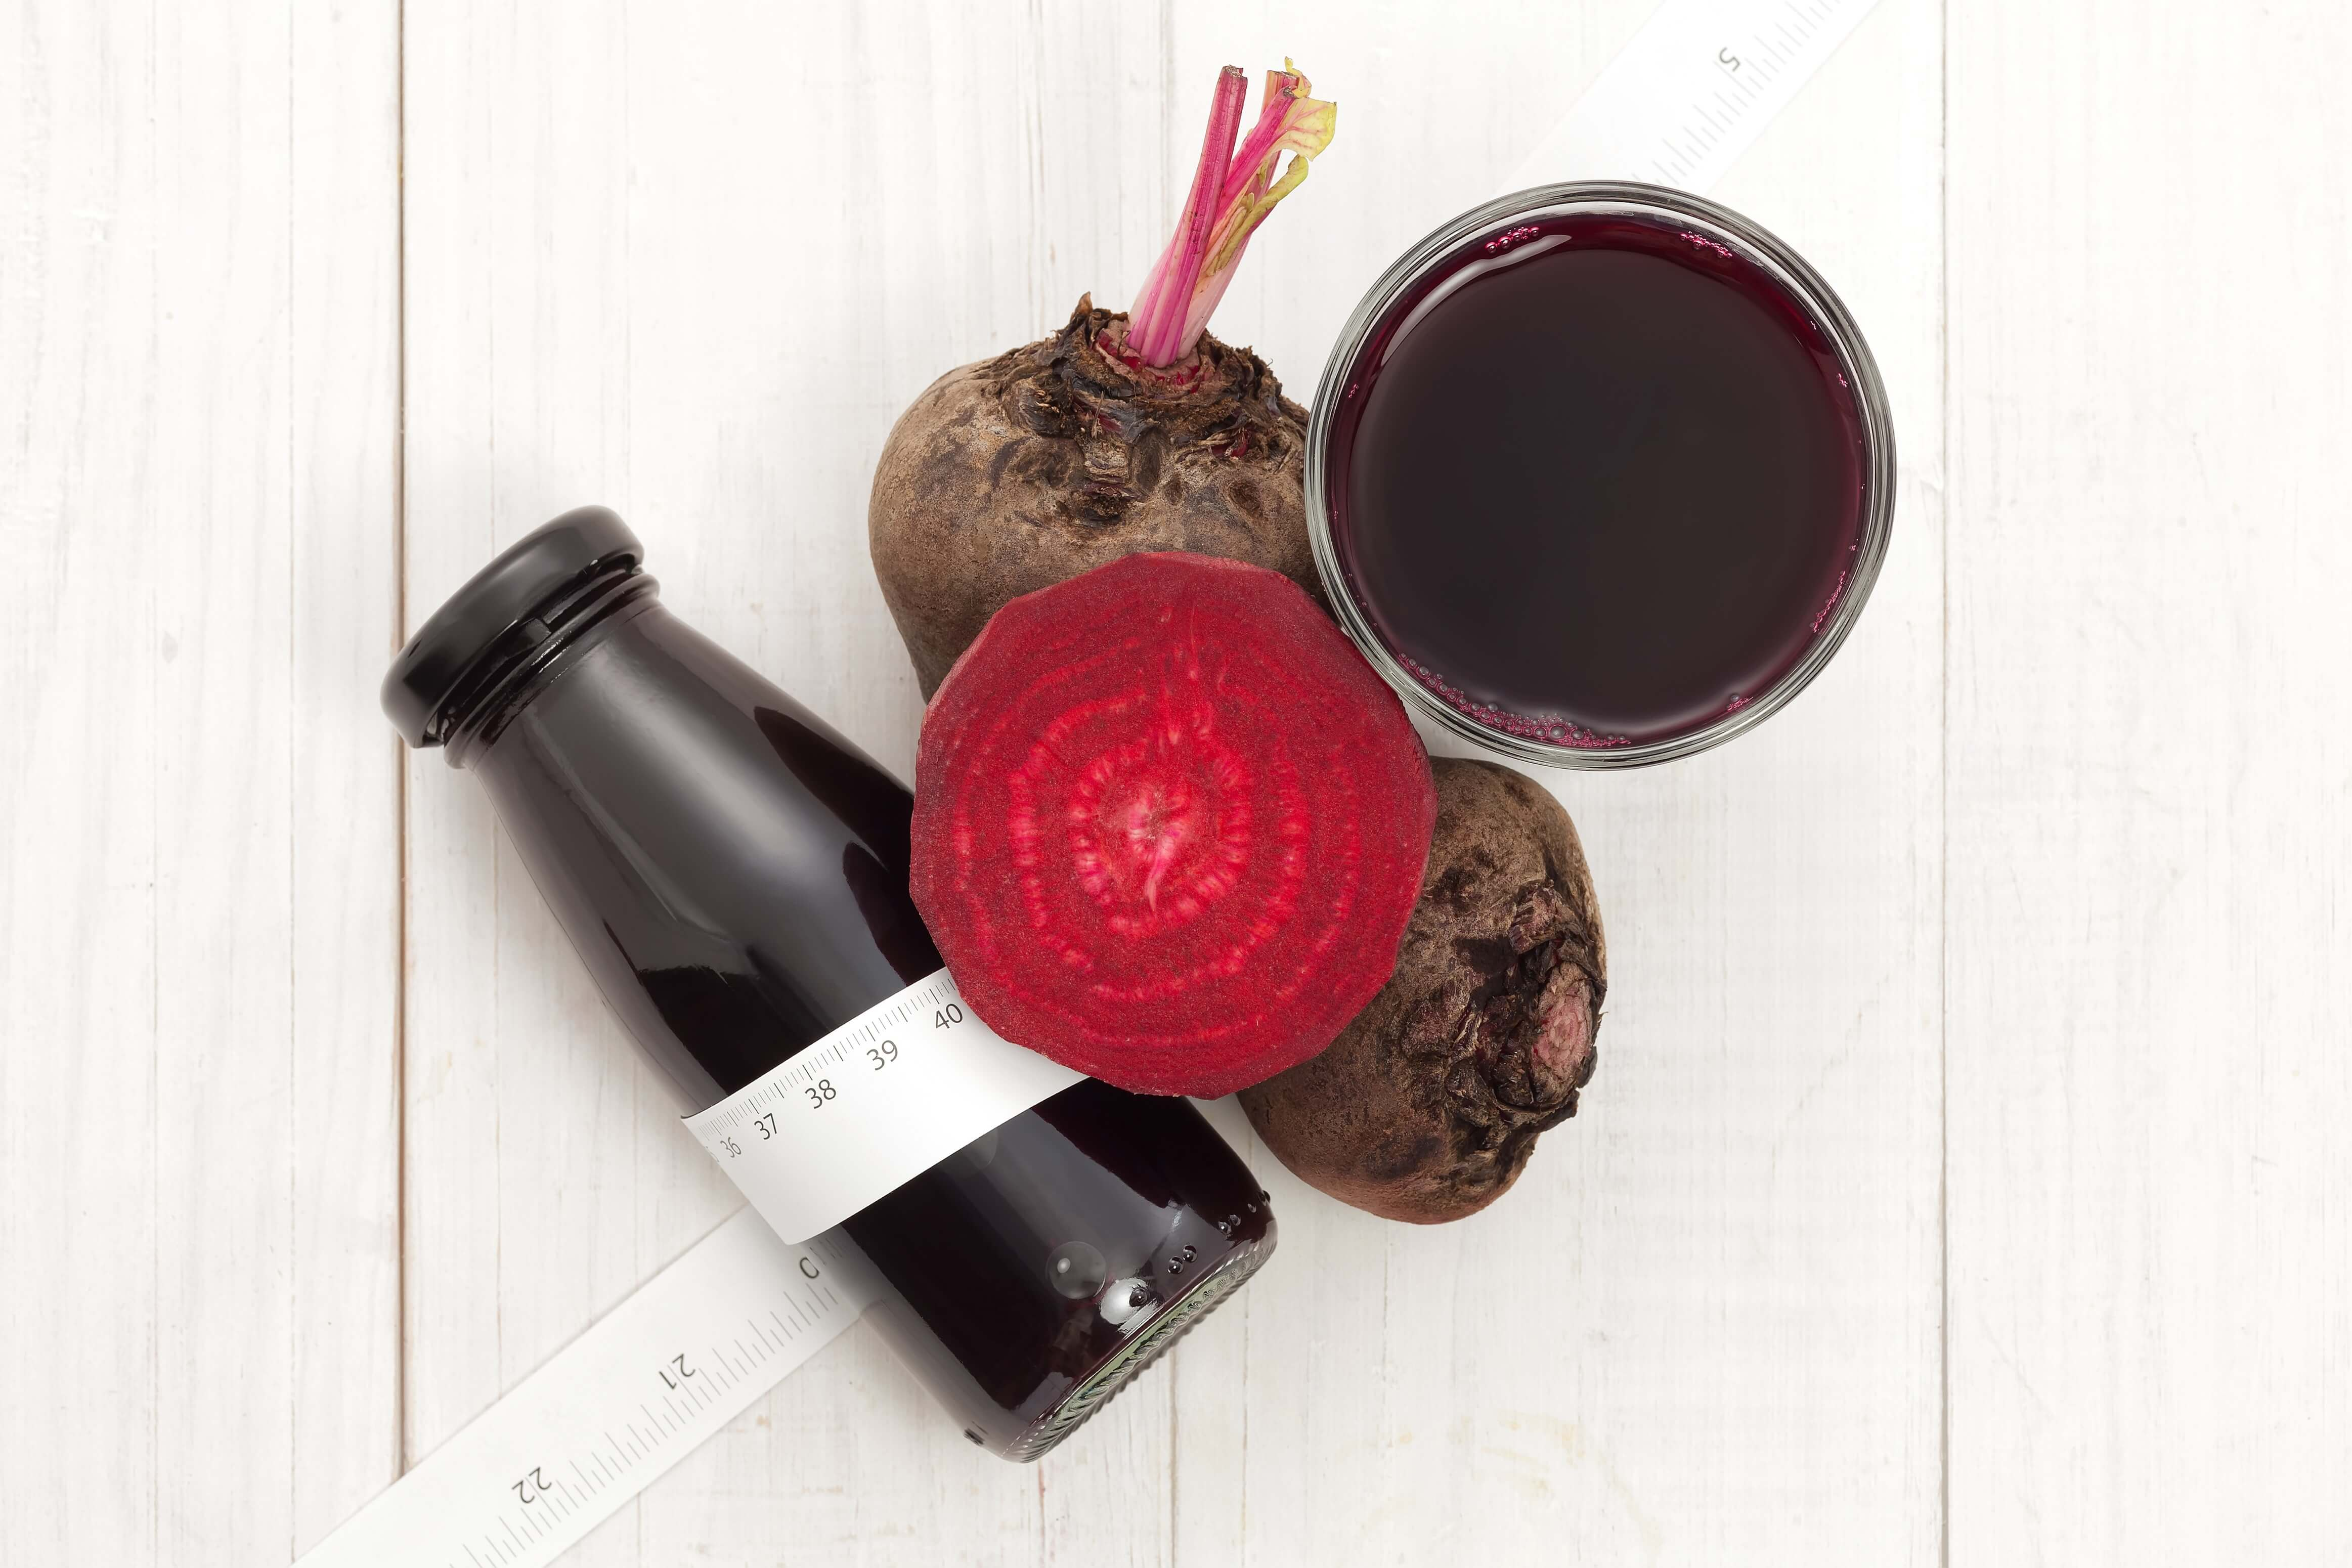 Beetroot with beet juice and mesuring tape